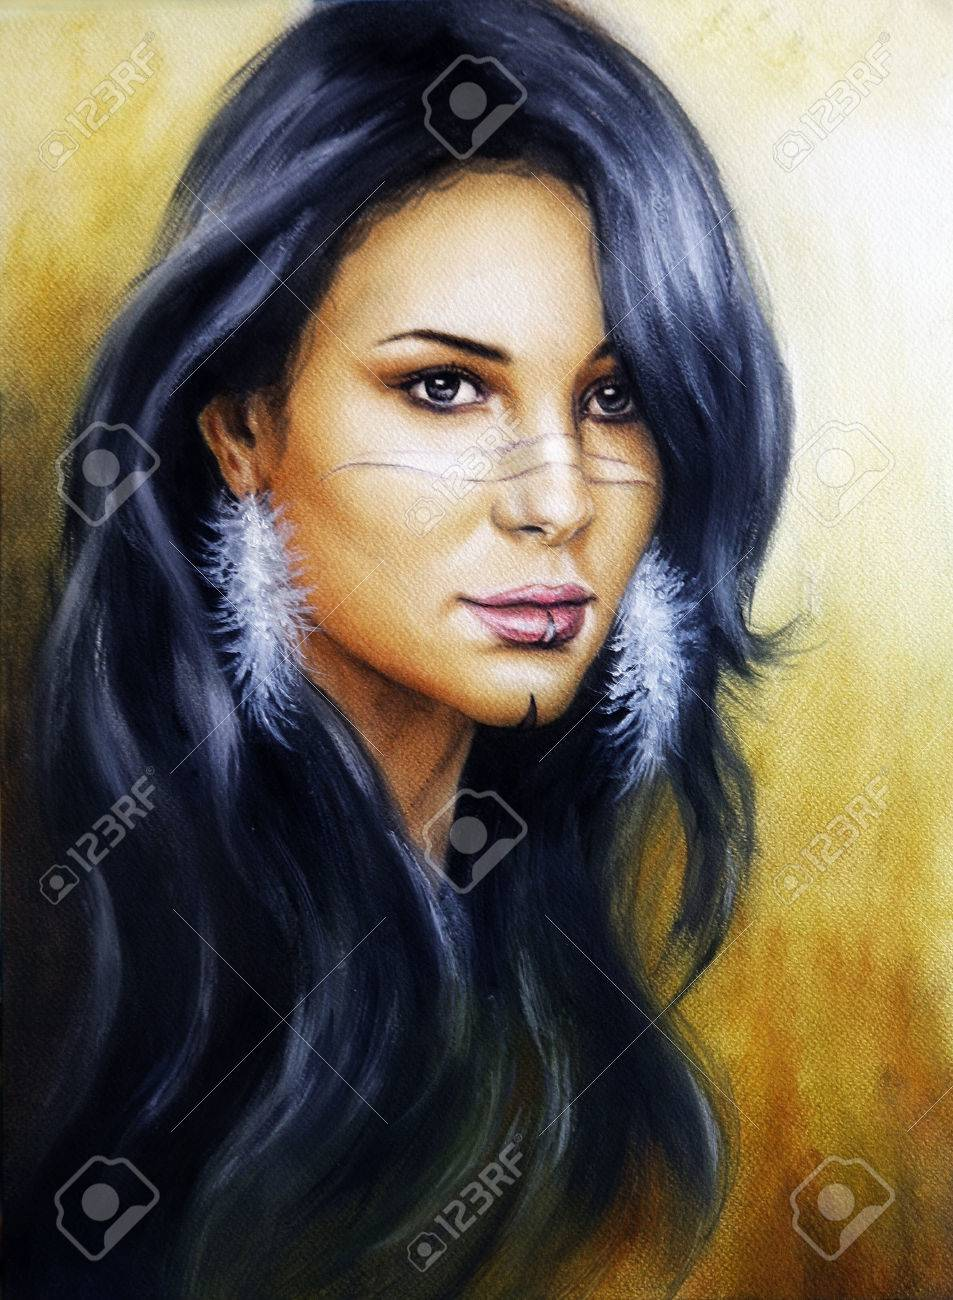 Beautiful illustration portrait of a young indian woman face with feather earrings and long dark